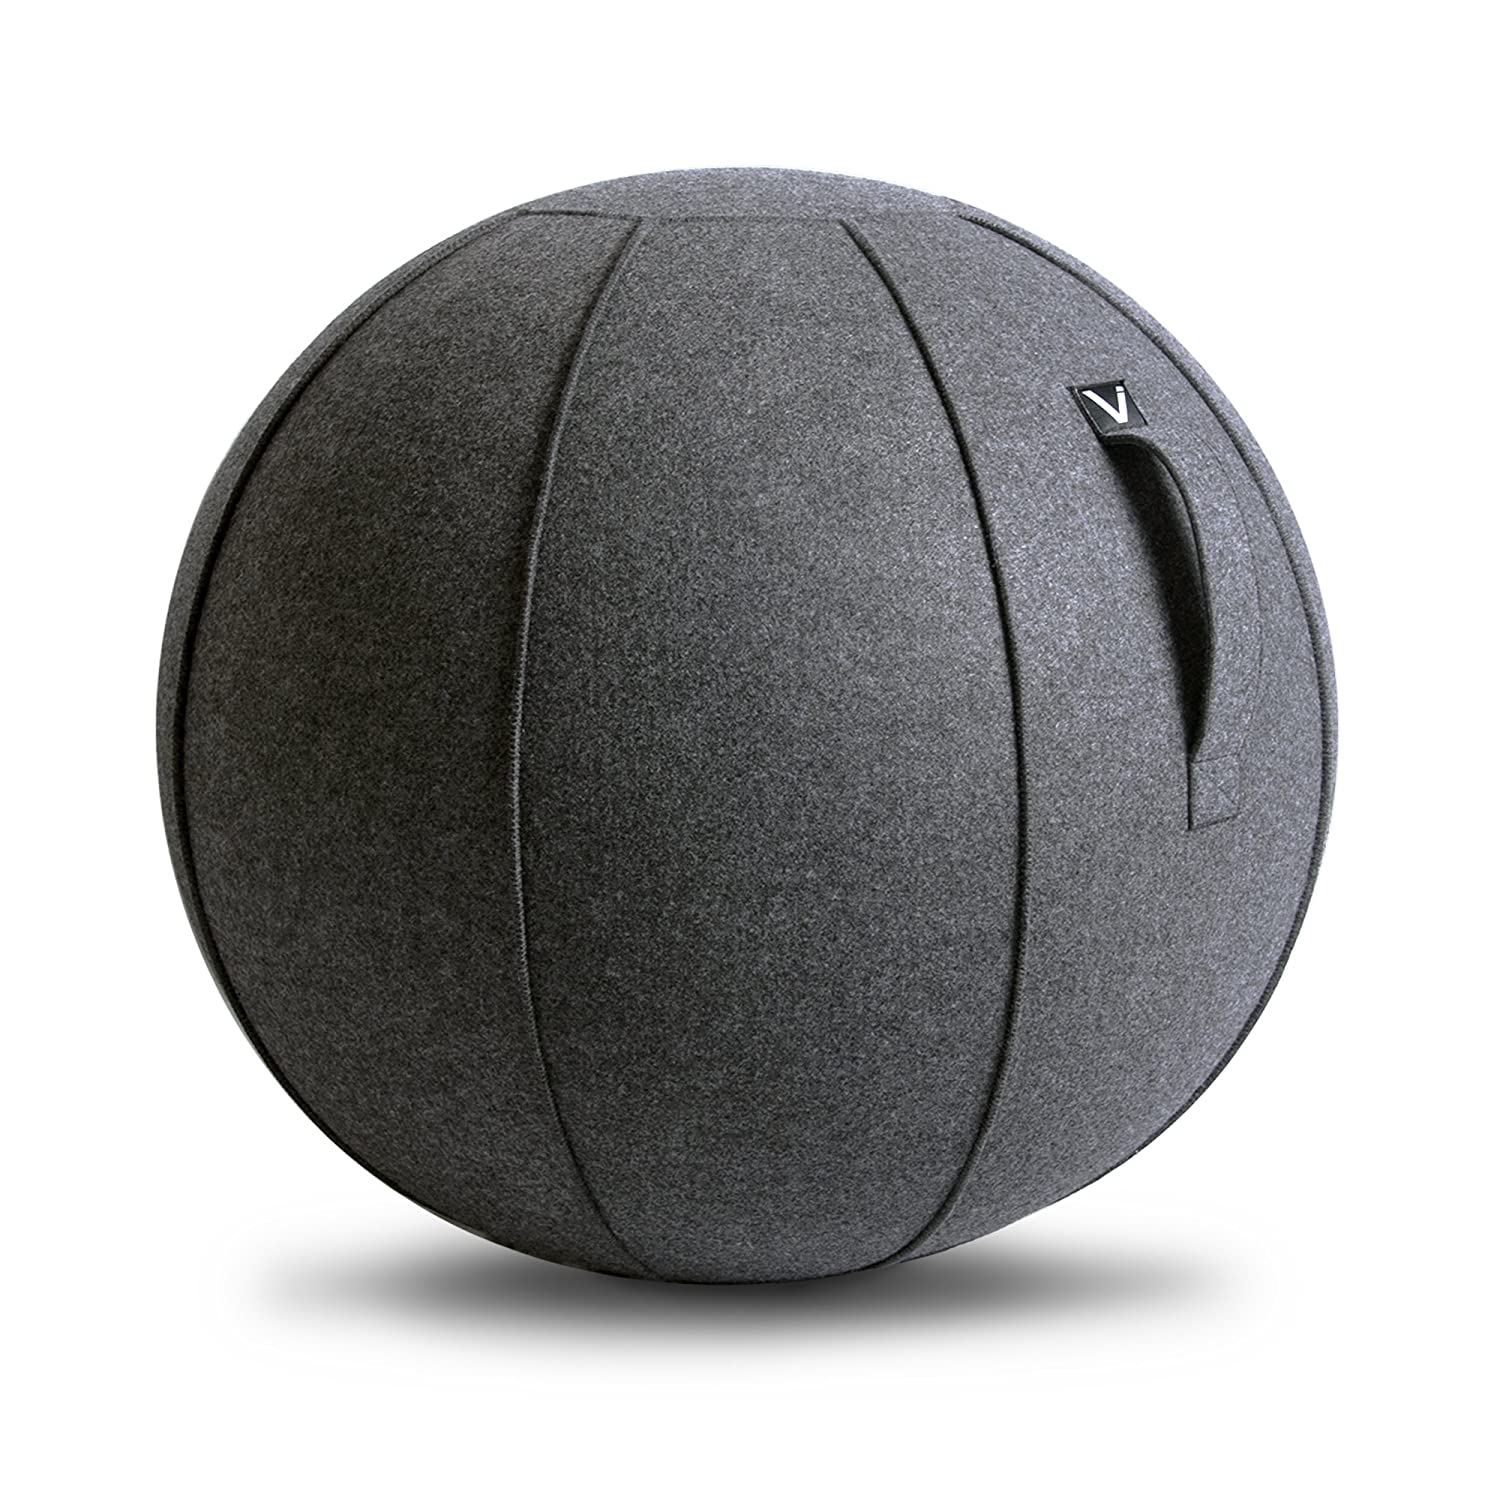 Classroom /& Yoga Lightweight Self-Standing Ergonomic Posture Activating Exercise Ball Solution with Handle /& Cover Vivora Luno Sitting Ball Chair for Office and Home